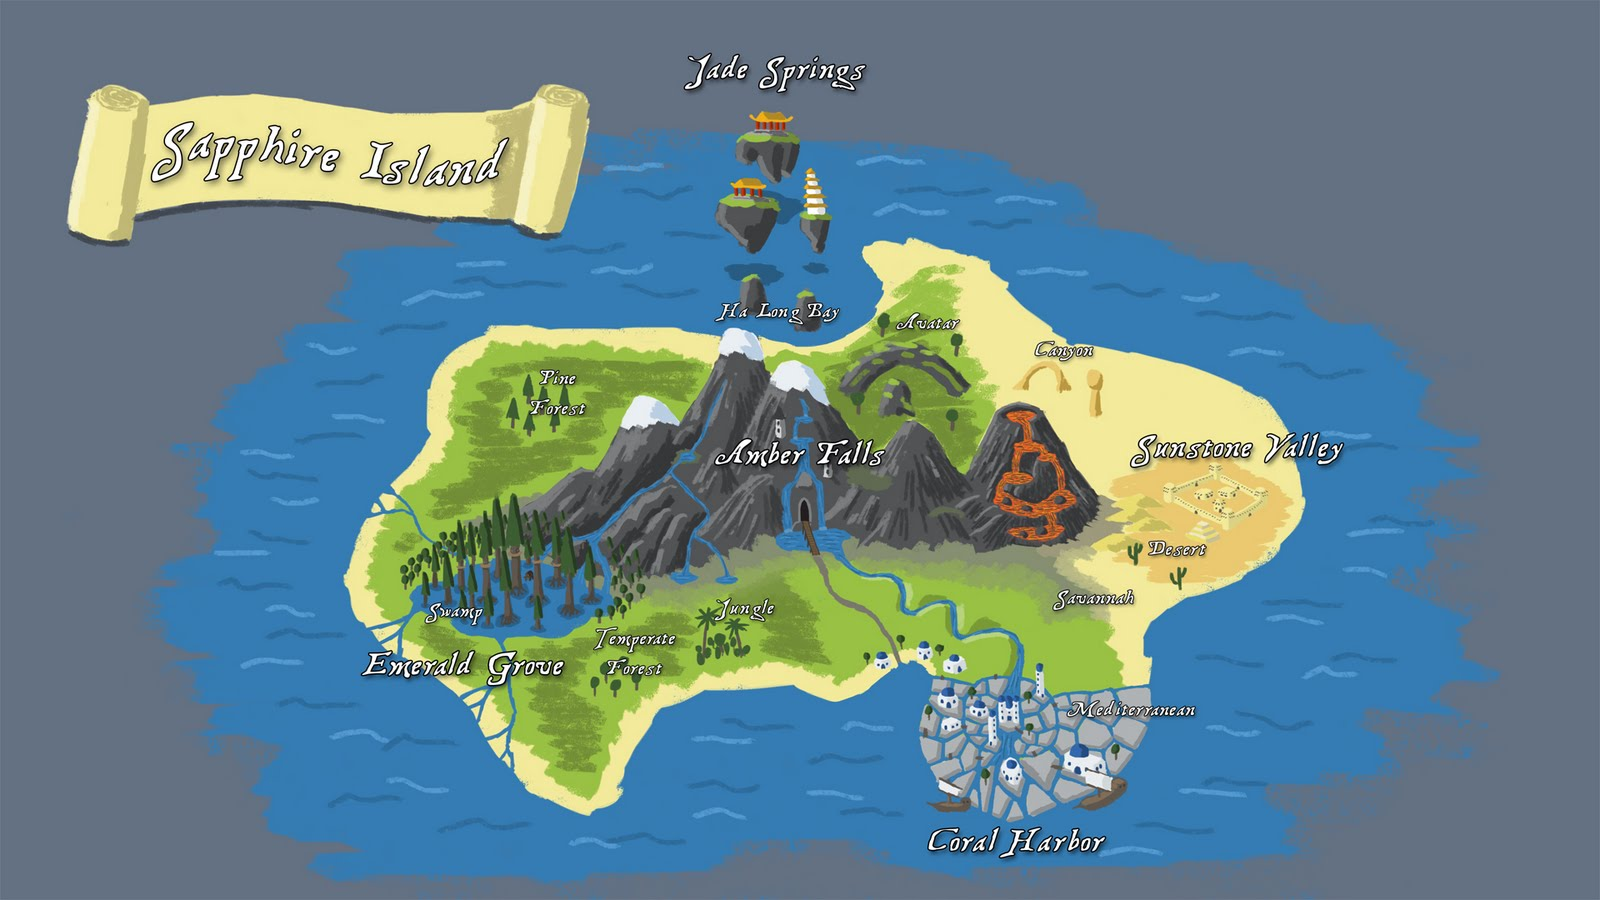 a geography of montserrat island Montserrat is an island nations located in the leeward islands in the caribbean sea the original inhabitants were the arawak and the carib peoples the first european to arrive was christopher columbus during his second voyage to the new world in 1493.